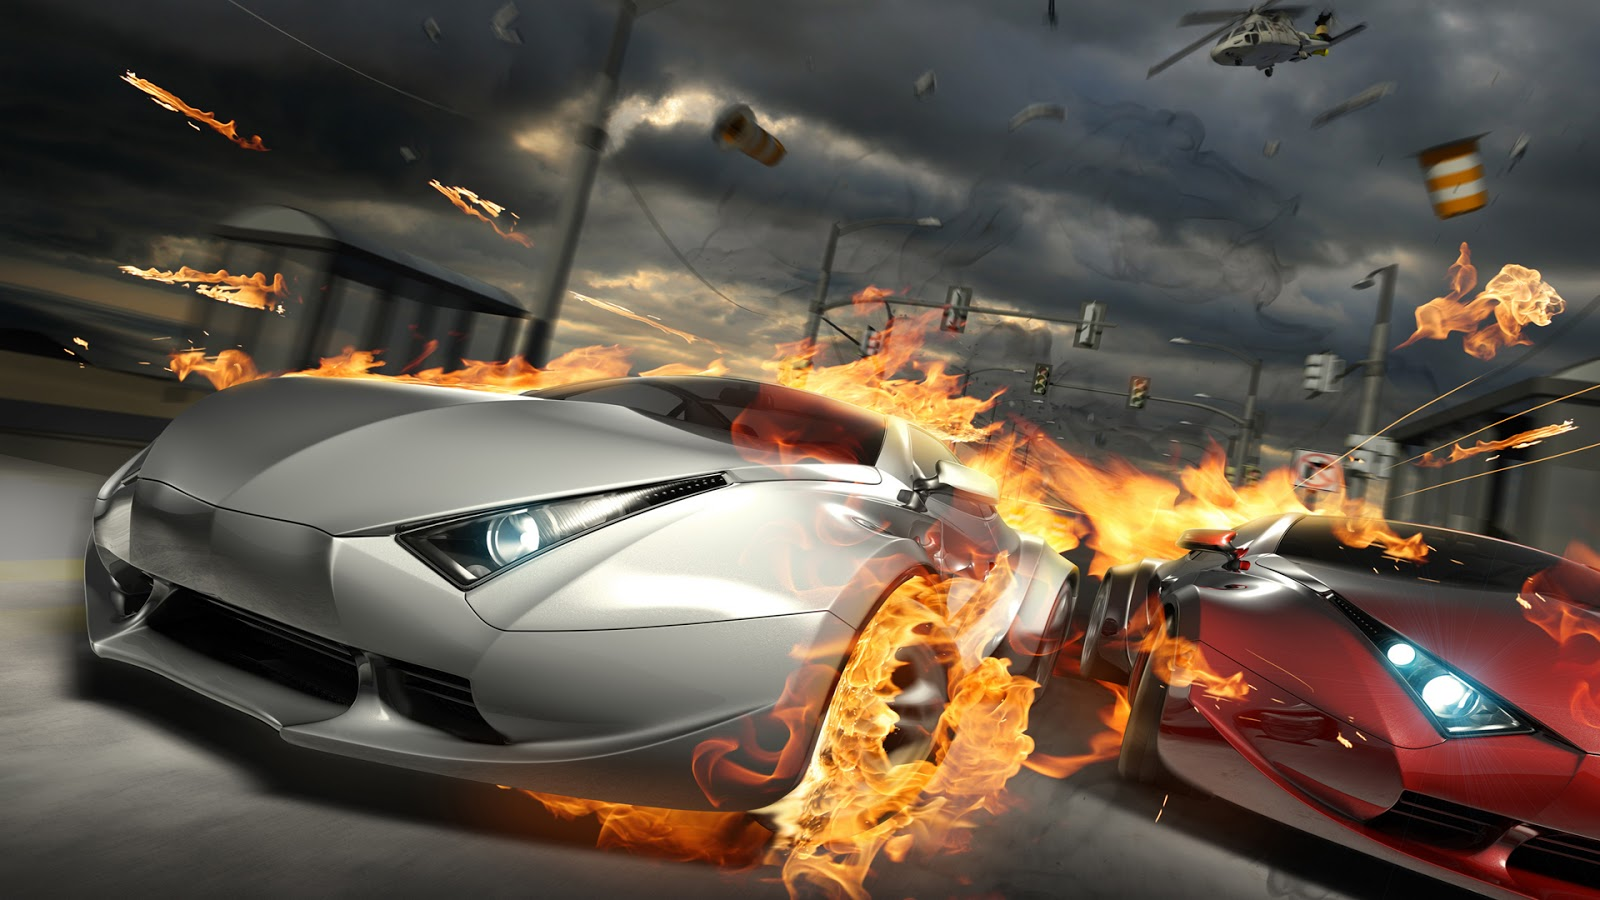 burning car race hd 1080p burnout revenge car accident wallpaper car 1600x900